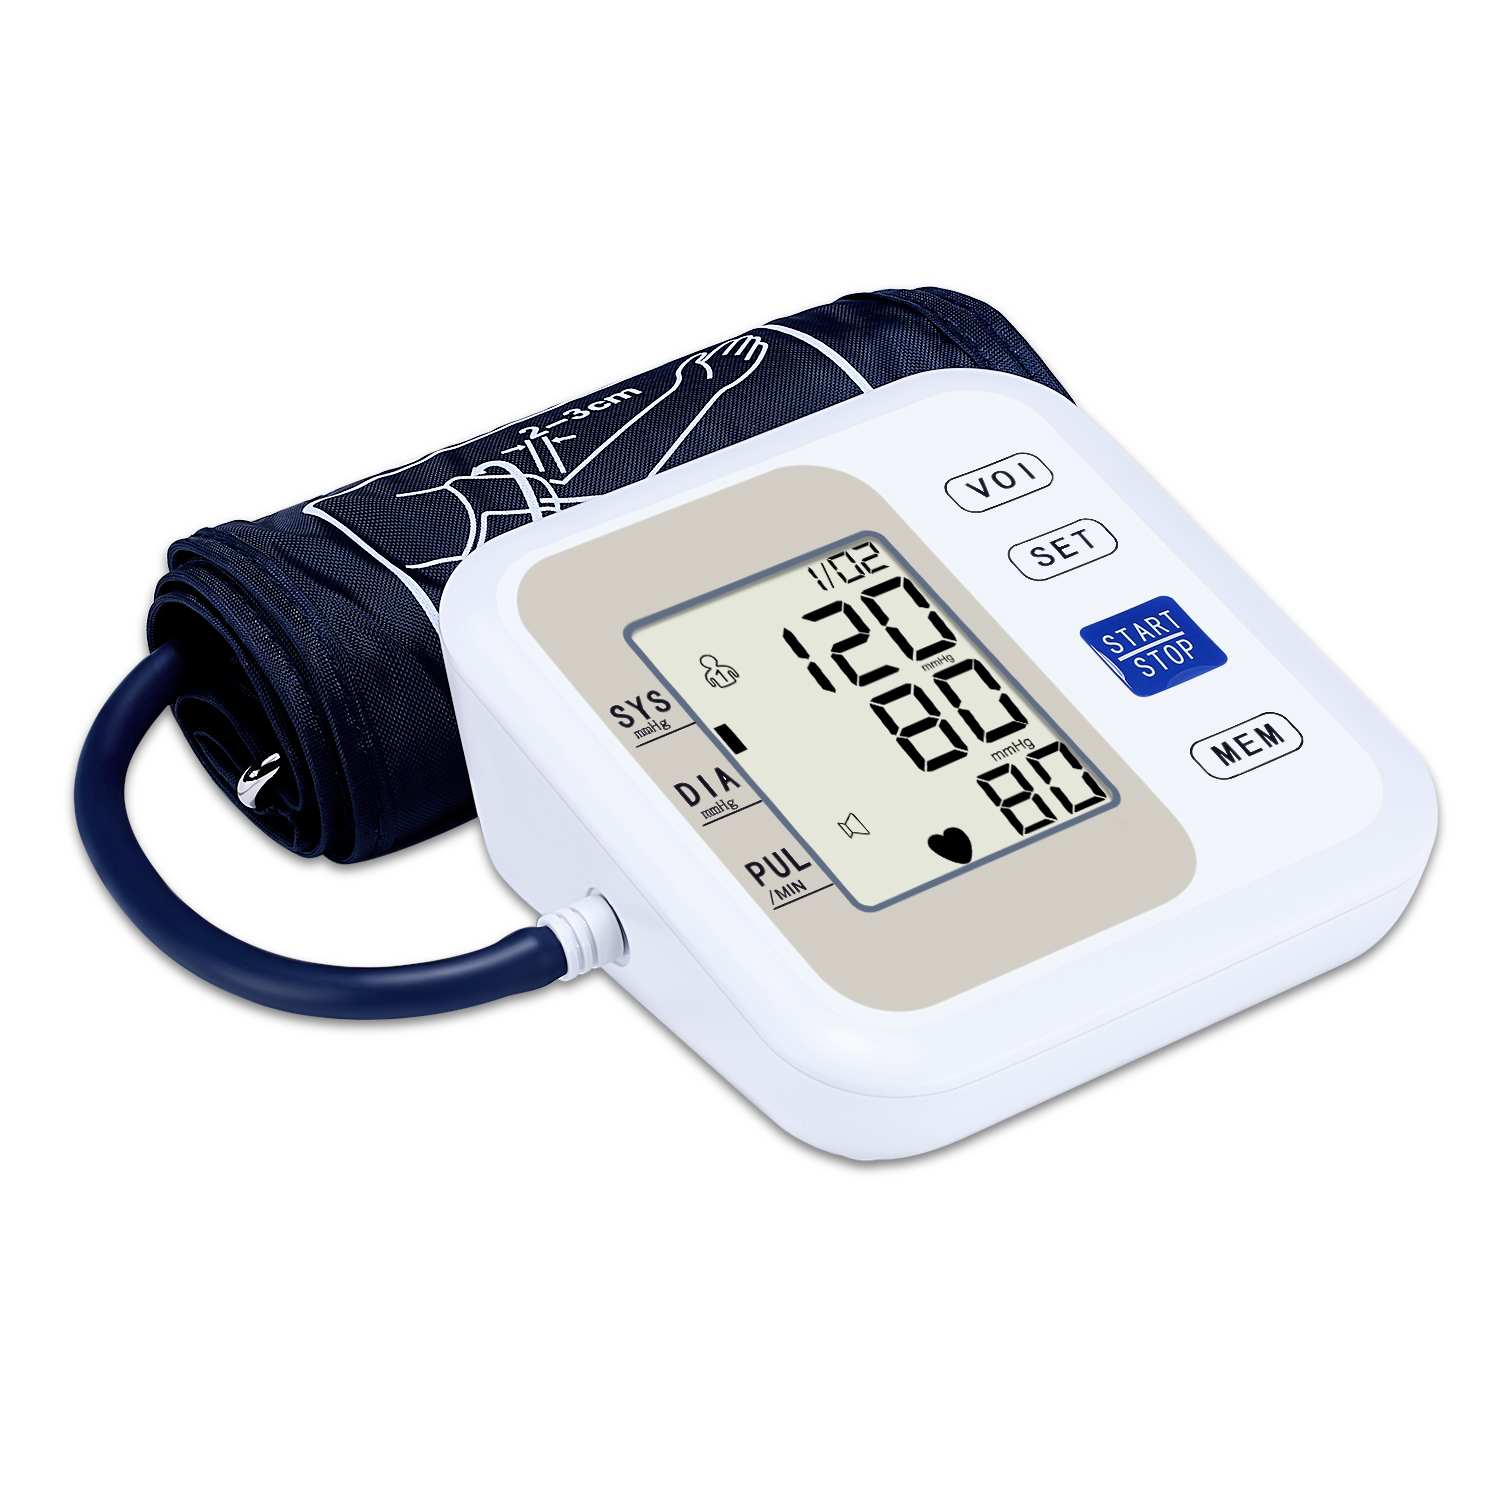 IHB Arrhythmia Detection Blood Pressure Heart Rate Monitor Upper Arm LED Full English Display With InstructionsIHB Arrhythmia Detection Blood Pressure Heart Rate Monitor Upper Arm LED Full English Display With Instructions